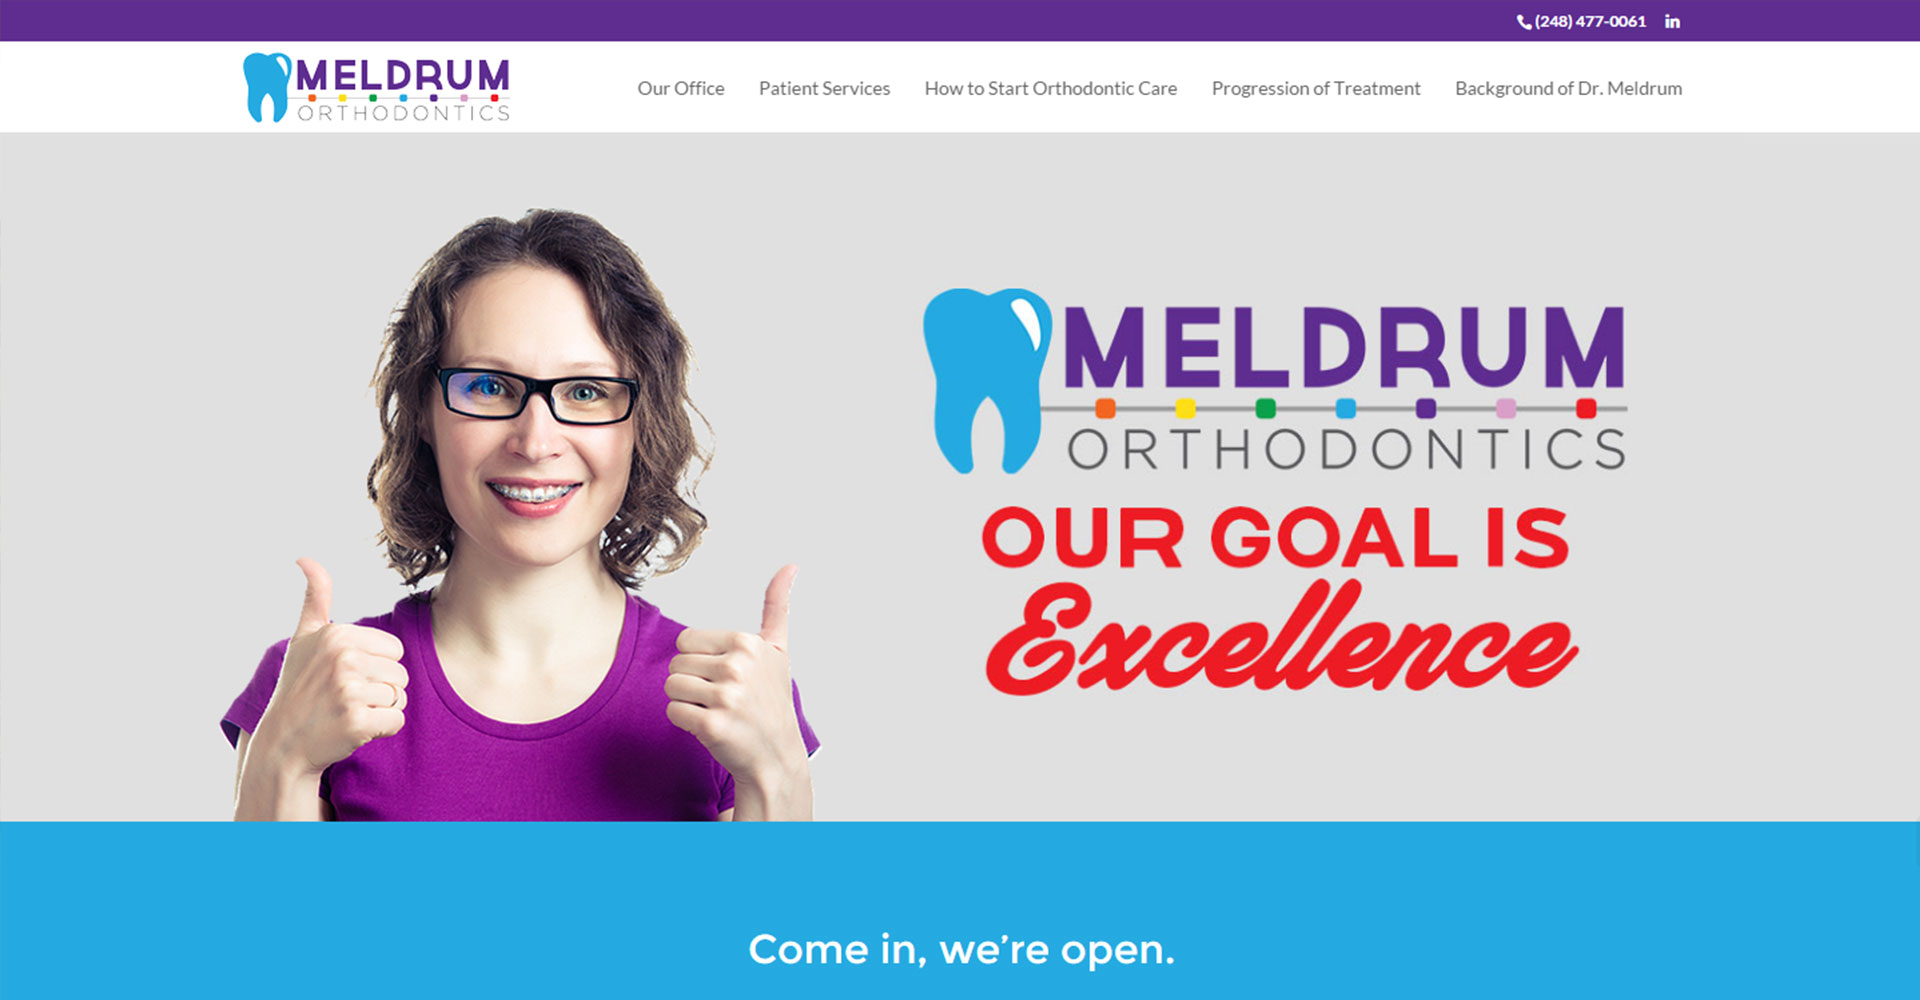 Meldrum Orthodontics - Zoda Design